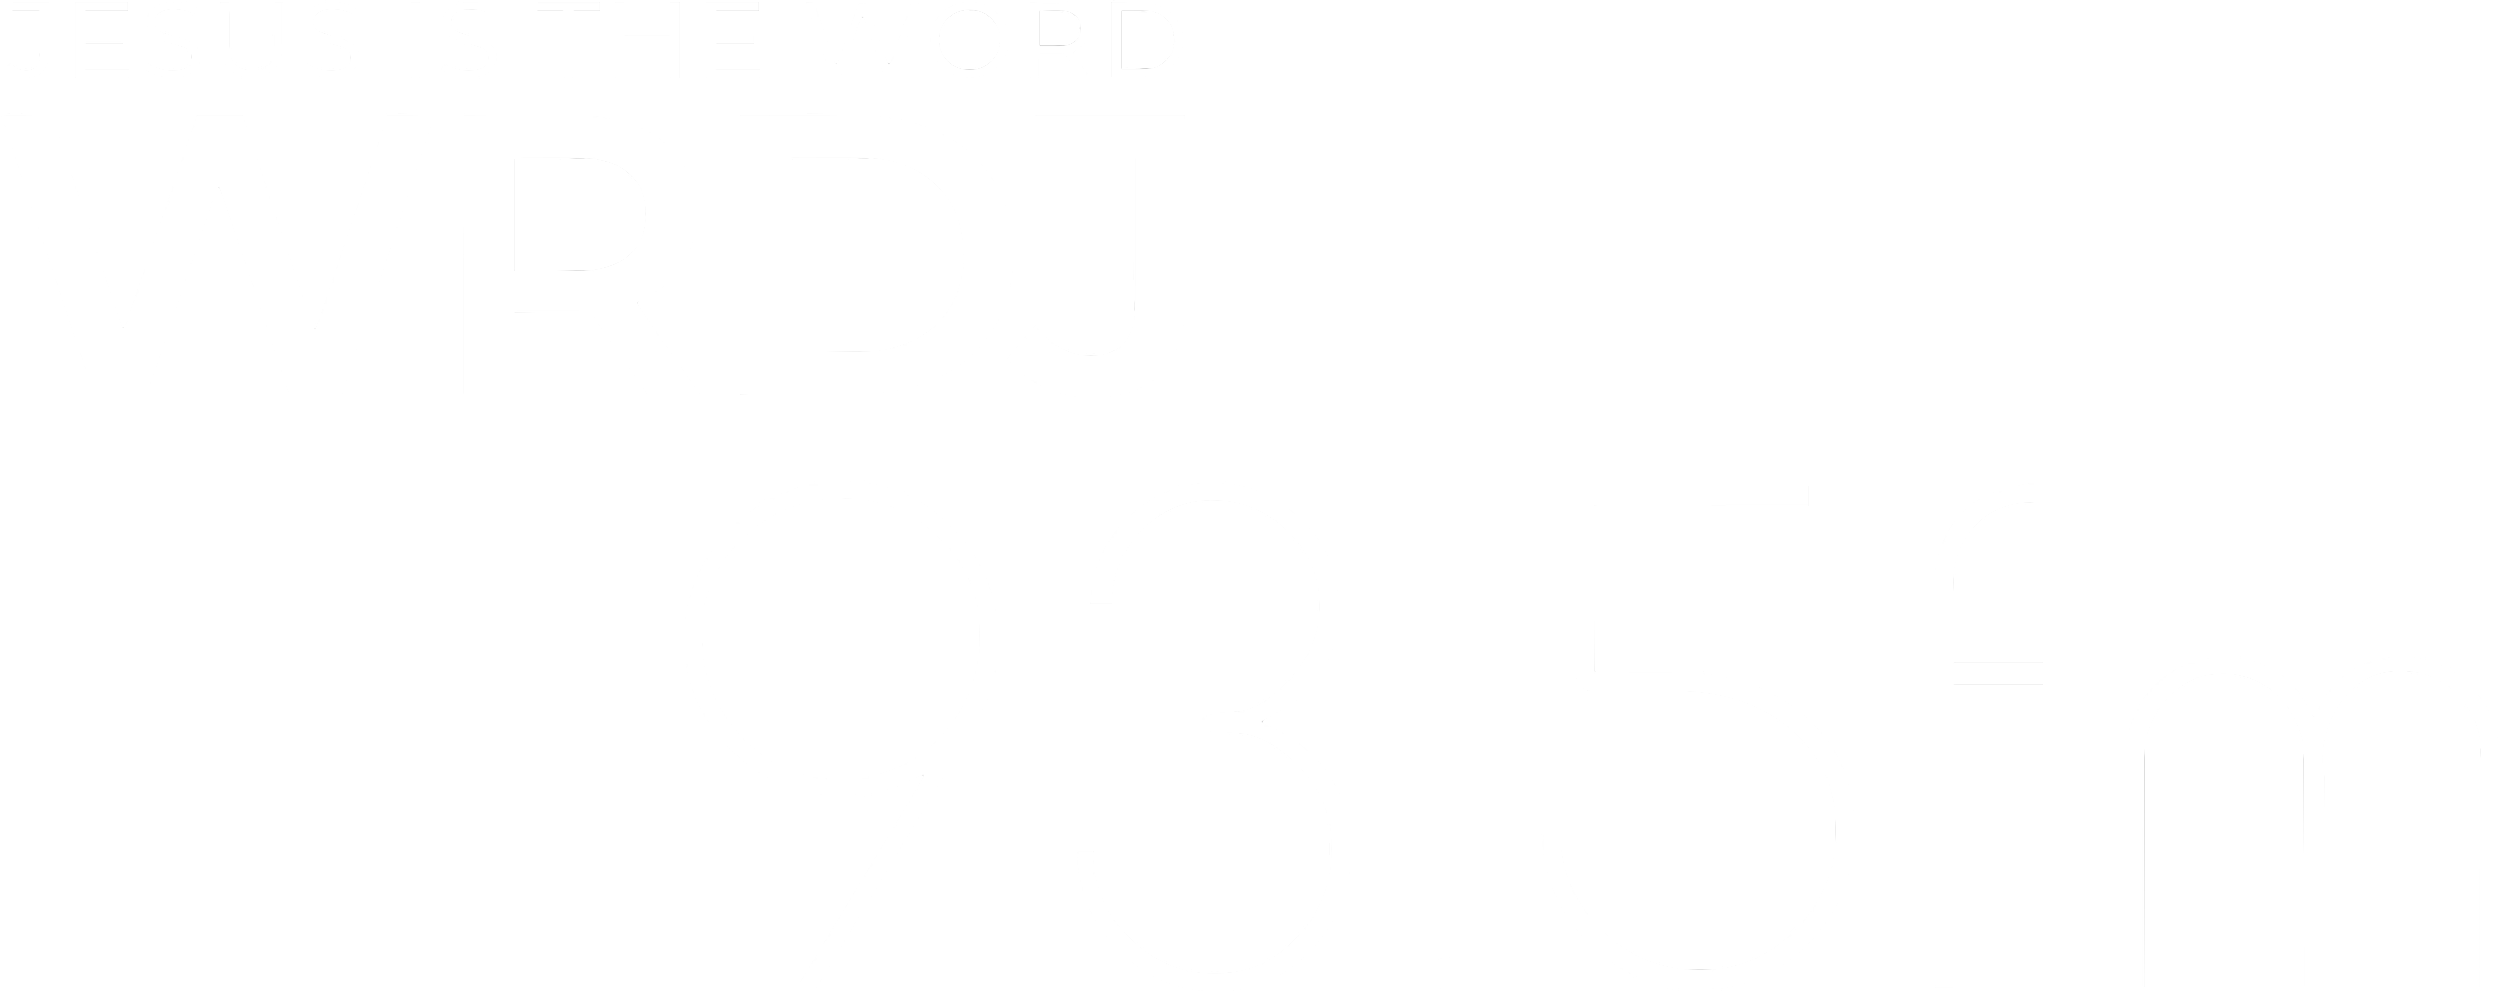 WRDJ 1920x1080 Logo NEW.png